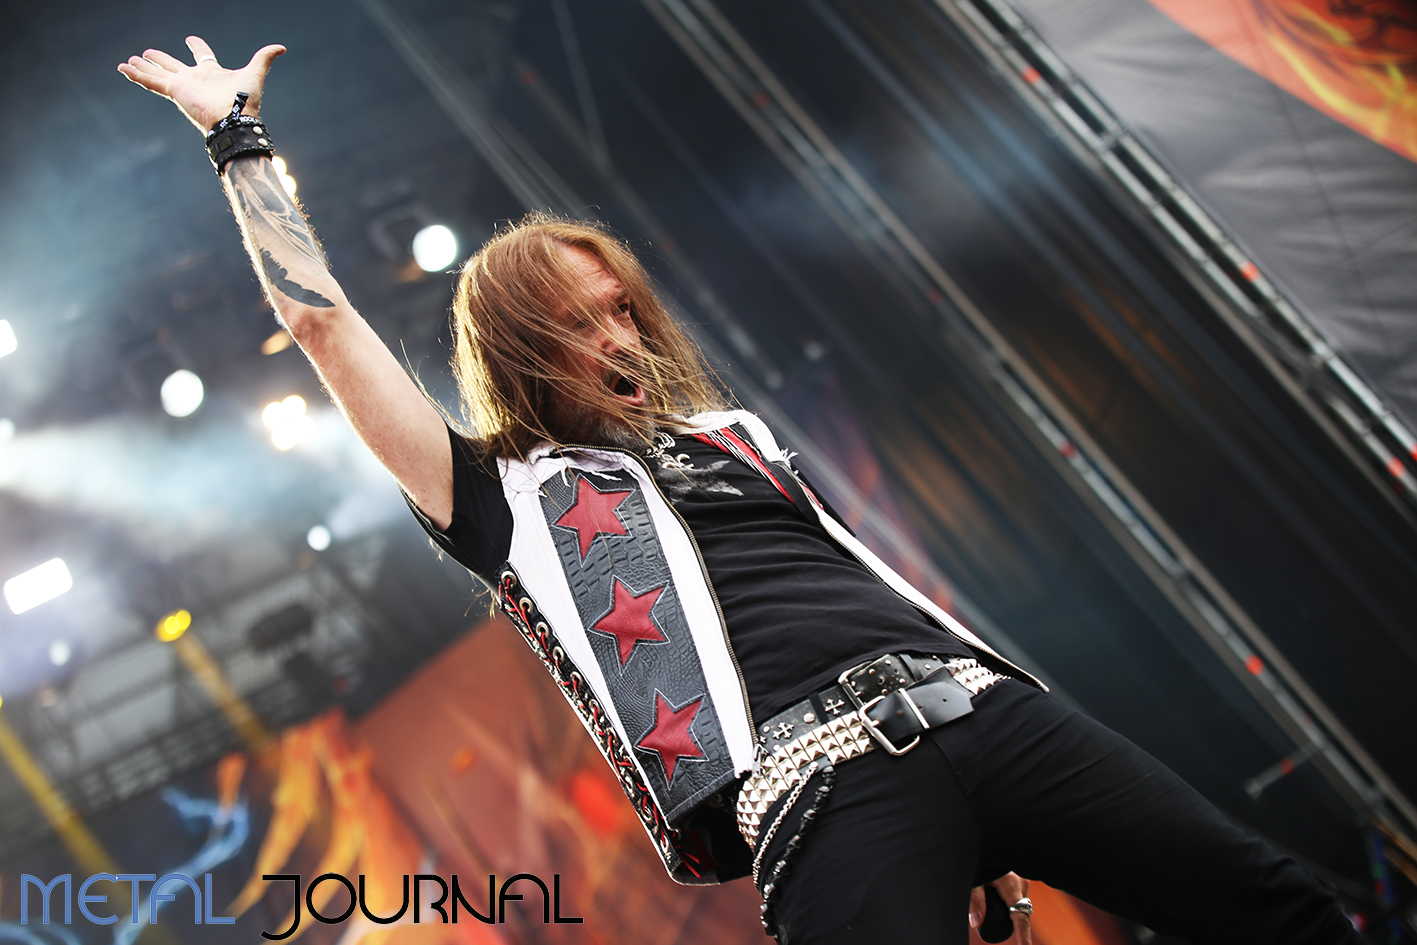 hammerfall - metal journal rock fest barcelona 2019 pic 6